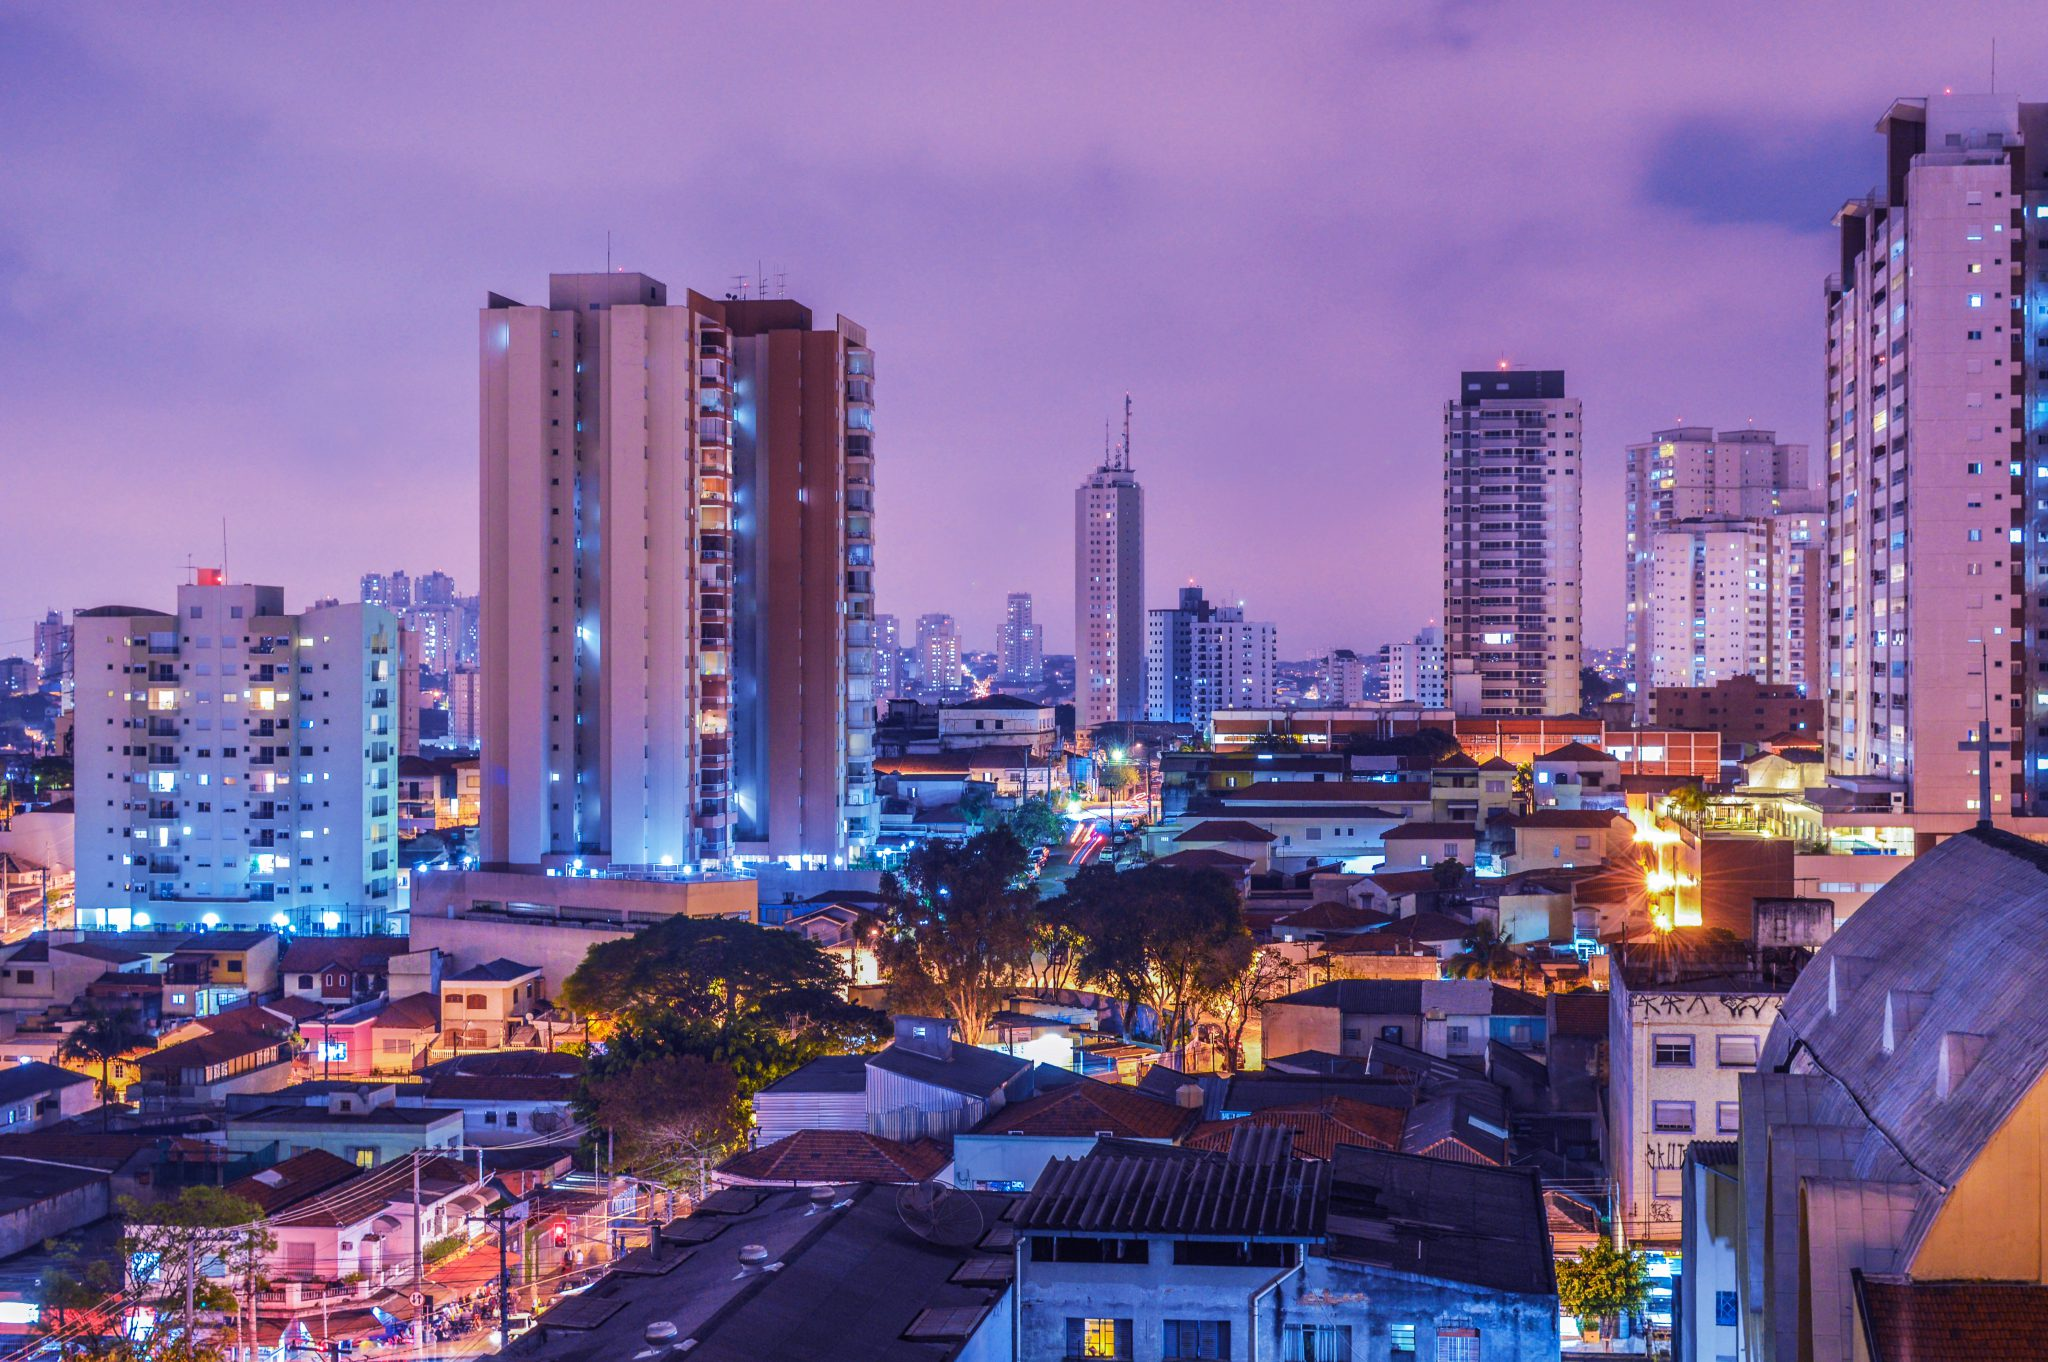 Sao Paulo, Brazil city at night with lights